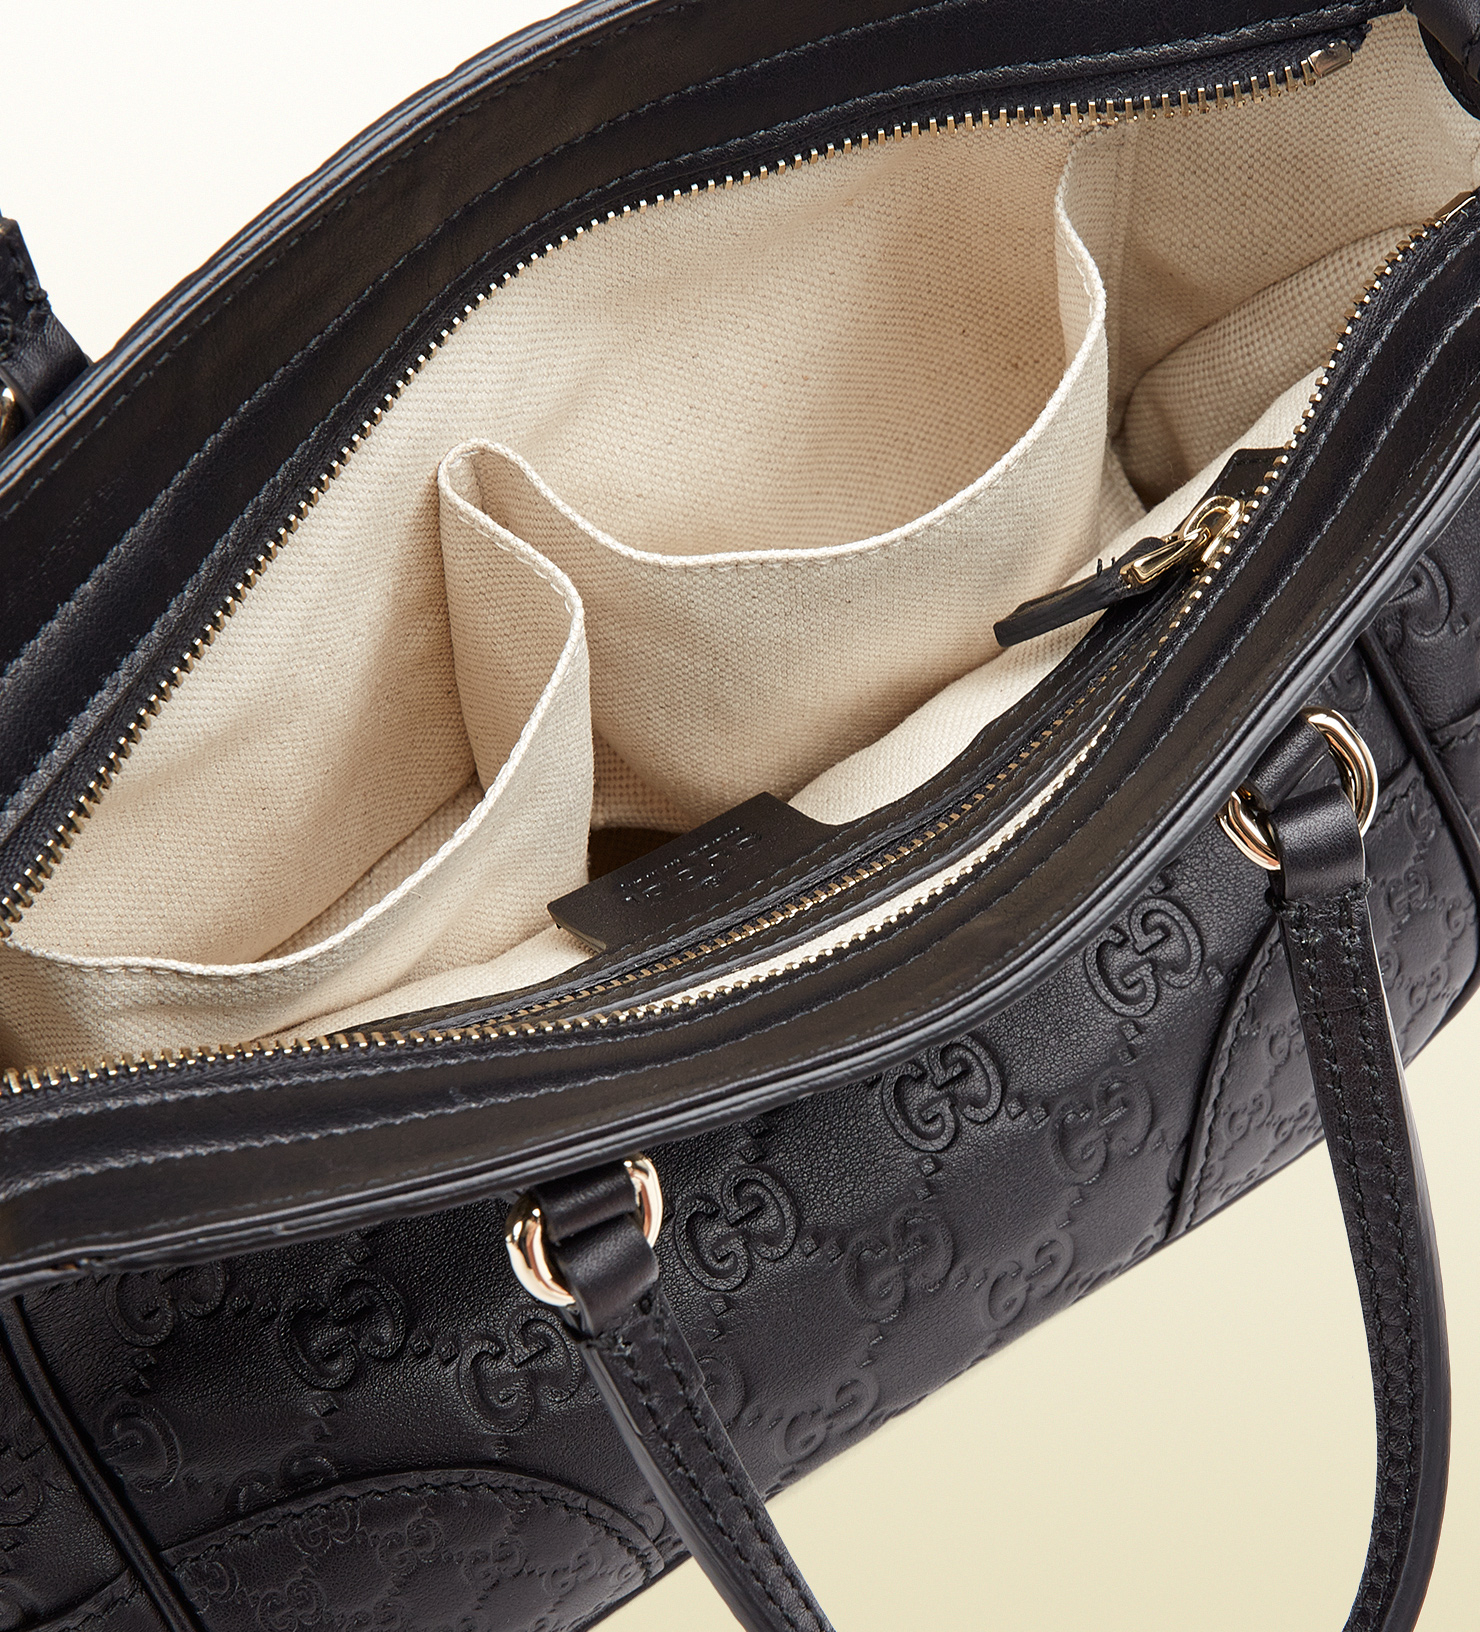 aa420ac7448c Gucci Bree Ssima Leather Top Handle Bag in Black - Lyst